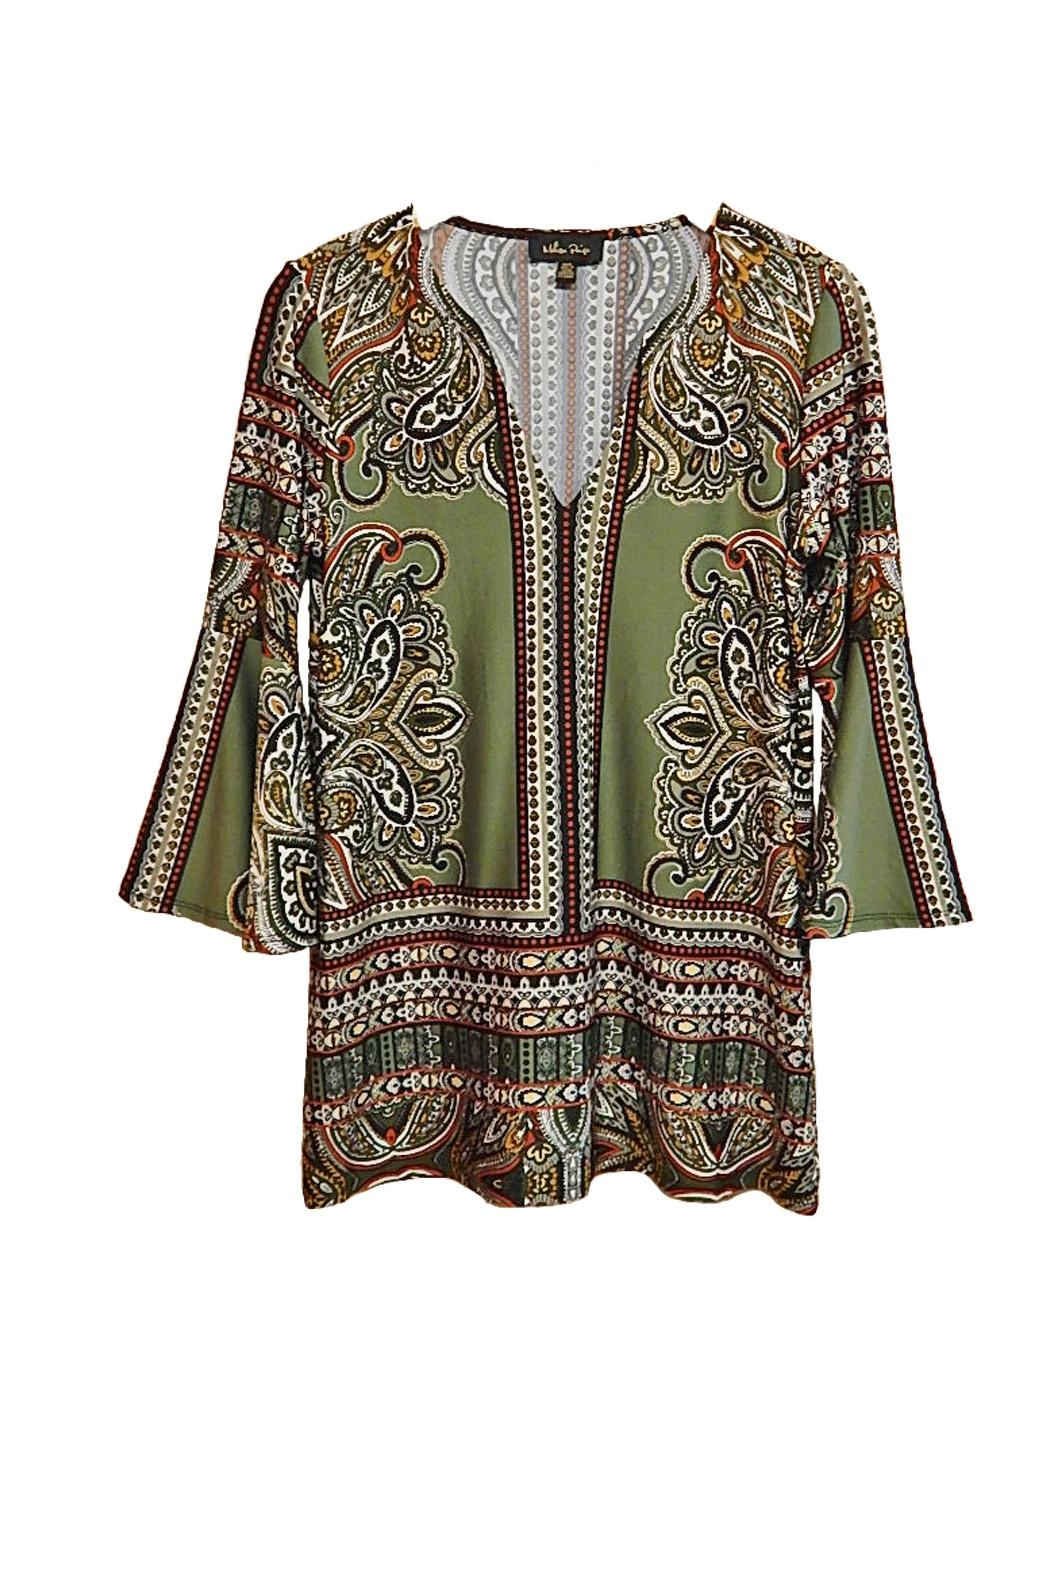 Melissa Paige Green Paisley Top - Main Image